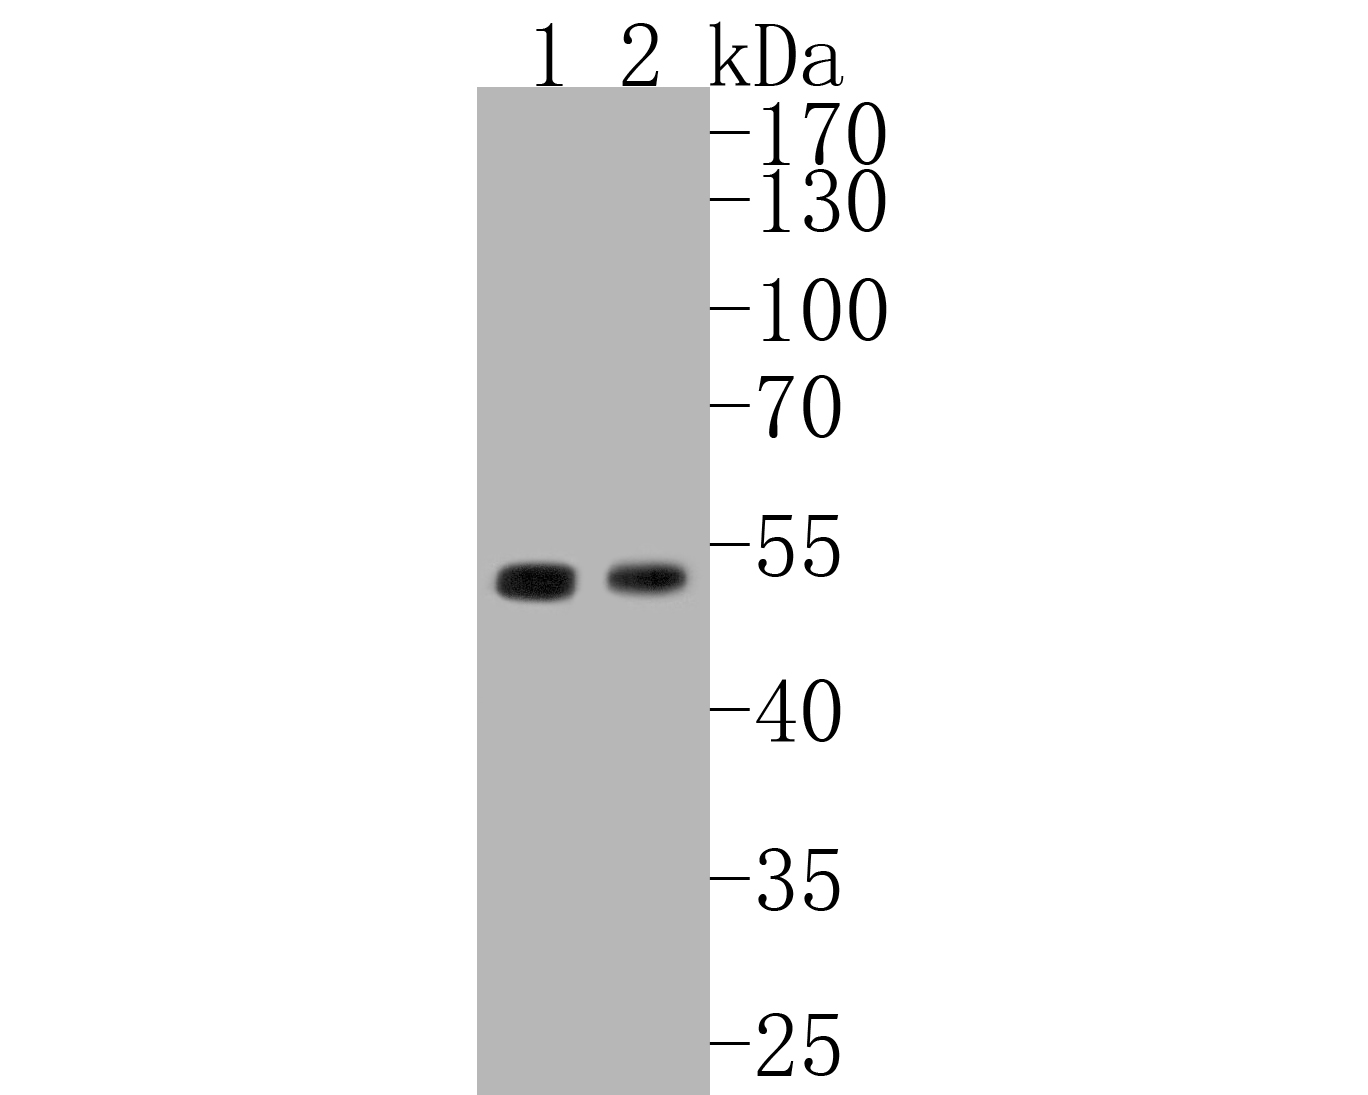 Western blot analysis of Cyclin E1 on different lysates. Proteins were transferred to a PVDF membrane and blocked with 5% BSA in PBS for 1 hour at room temperature. The primary antibody (ET1612-16, 1/500) was used in 5% BSA at room temperature for 2 hours. Goat Anti-Rabbit IgG - HRP Secondary Antibody (HA1001) at 1:5,000 dilution was used for 1 hour at room temperature.<br /> Positive control: <br /> Lane 1: human placenta tissue lysate<br /> Lane 2: K562 cell lysate